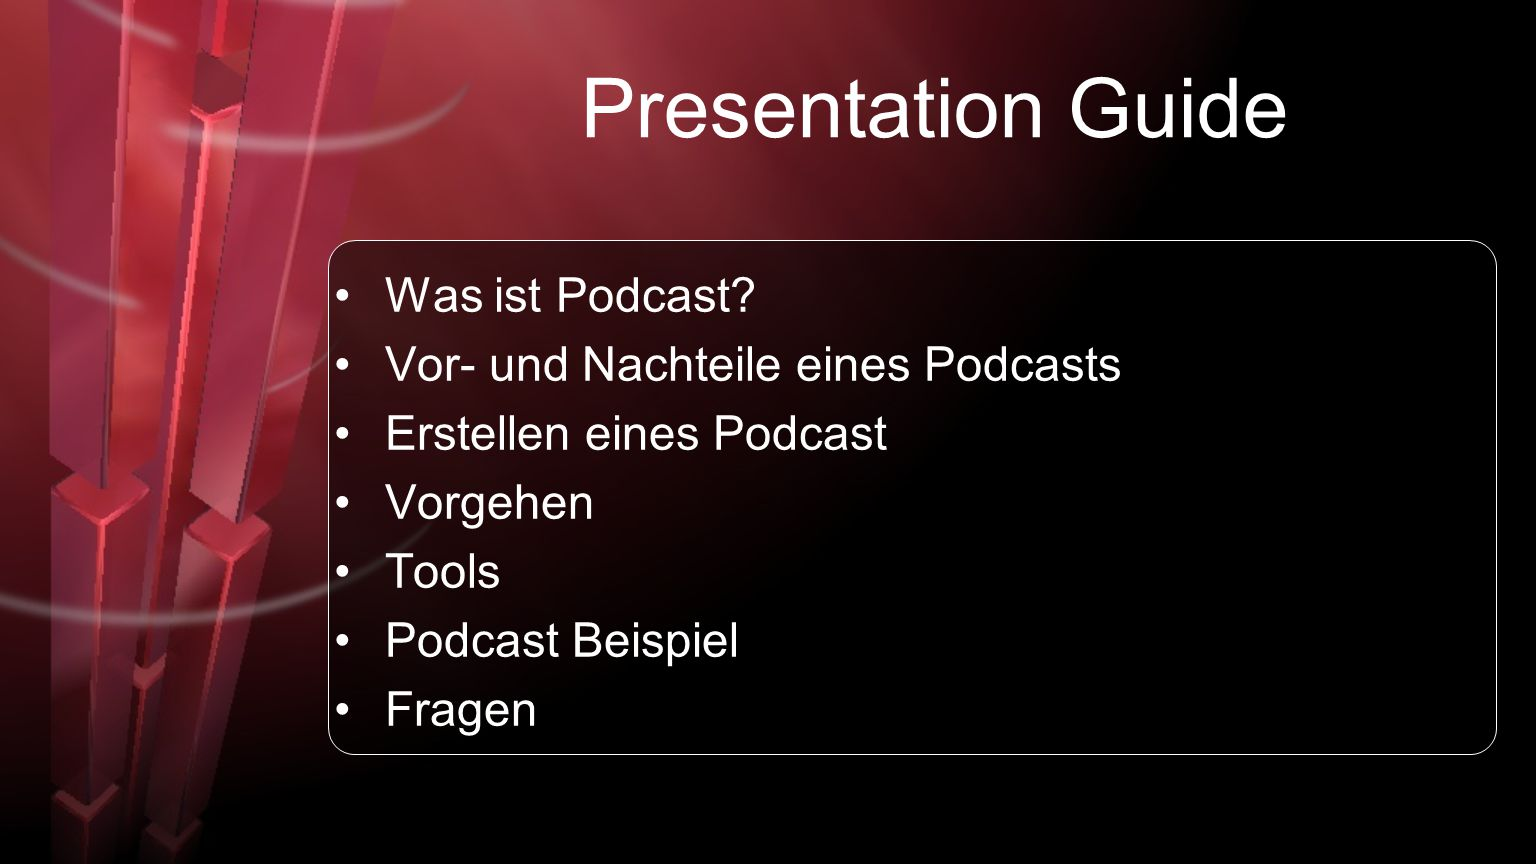 Was ist Podcast?